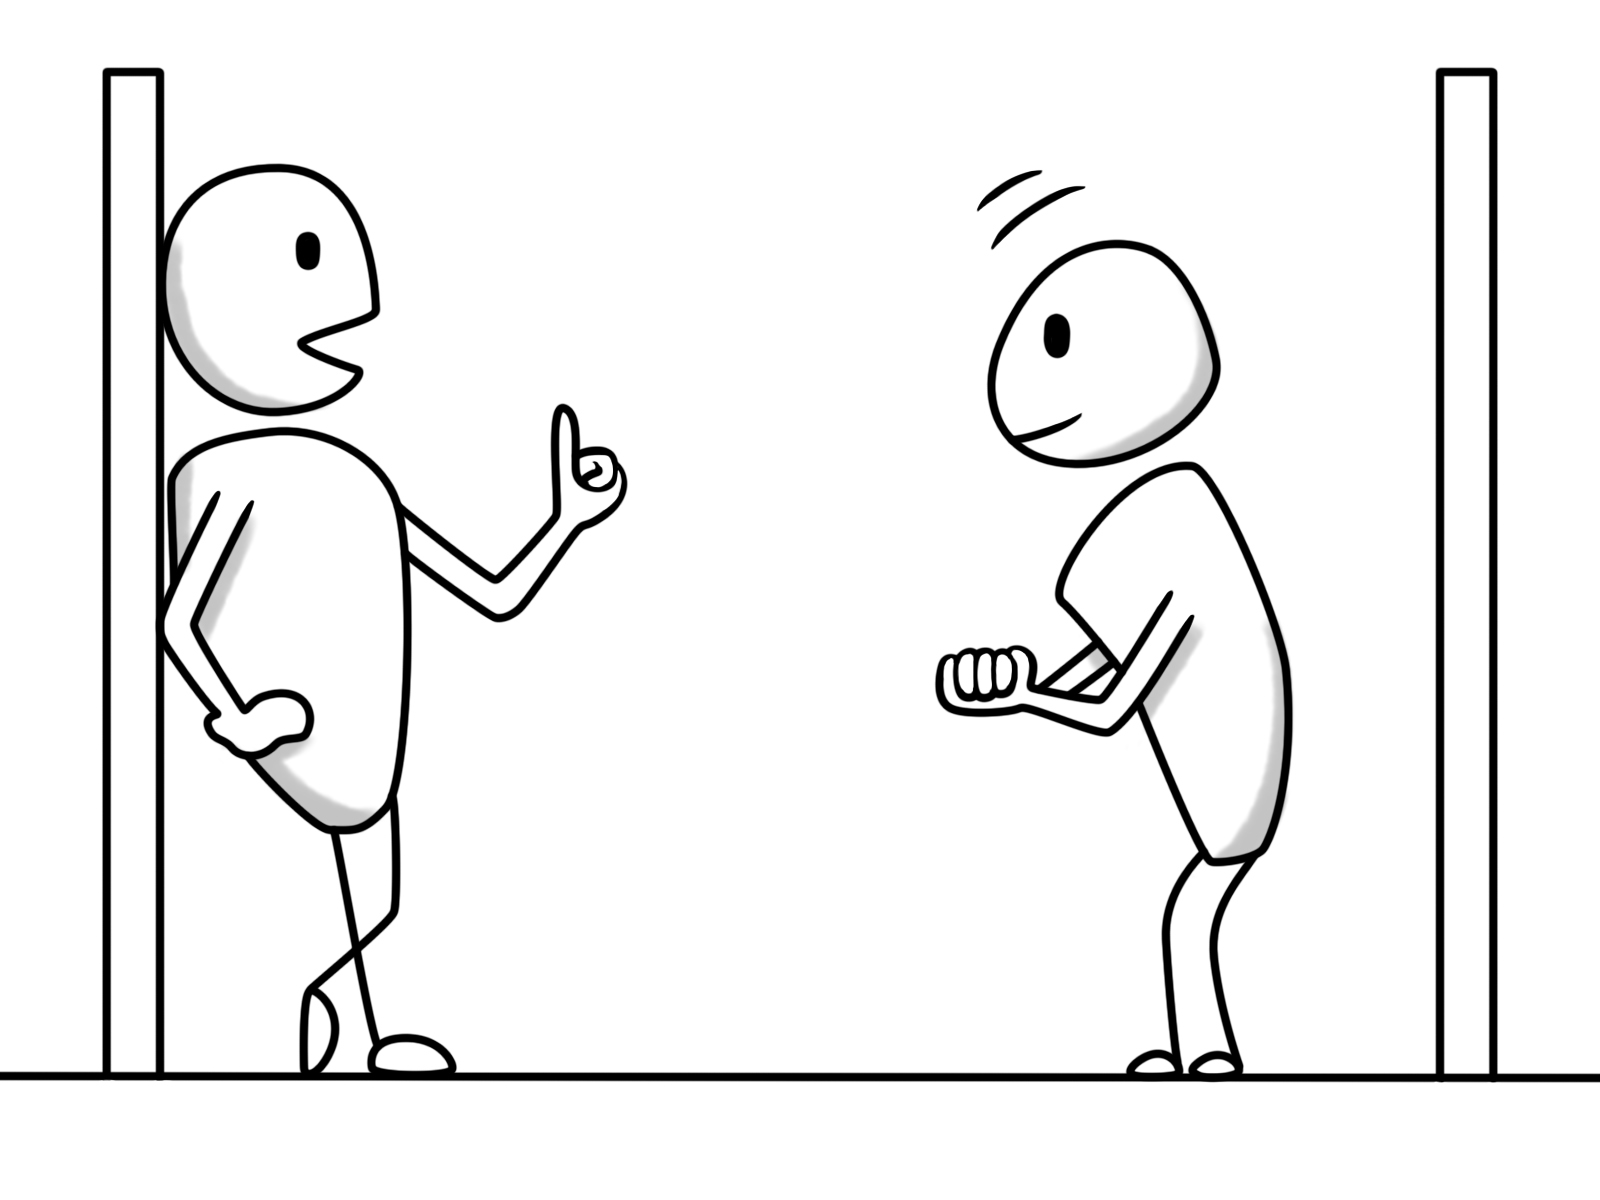 Does the left individual give valuable advice, which the right individual accepts gratefully? Or is the right individual annoyed that the left individual imposes rules, but does not show the annoyance? Or is the left individual secretly frustrated that the right individual is still dependent and needs guidance? The syntopic perspective assumes that the answer to these questions depends on the motives of the viewer.